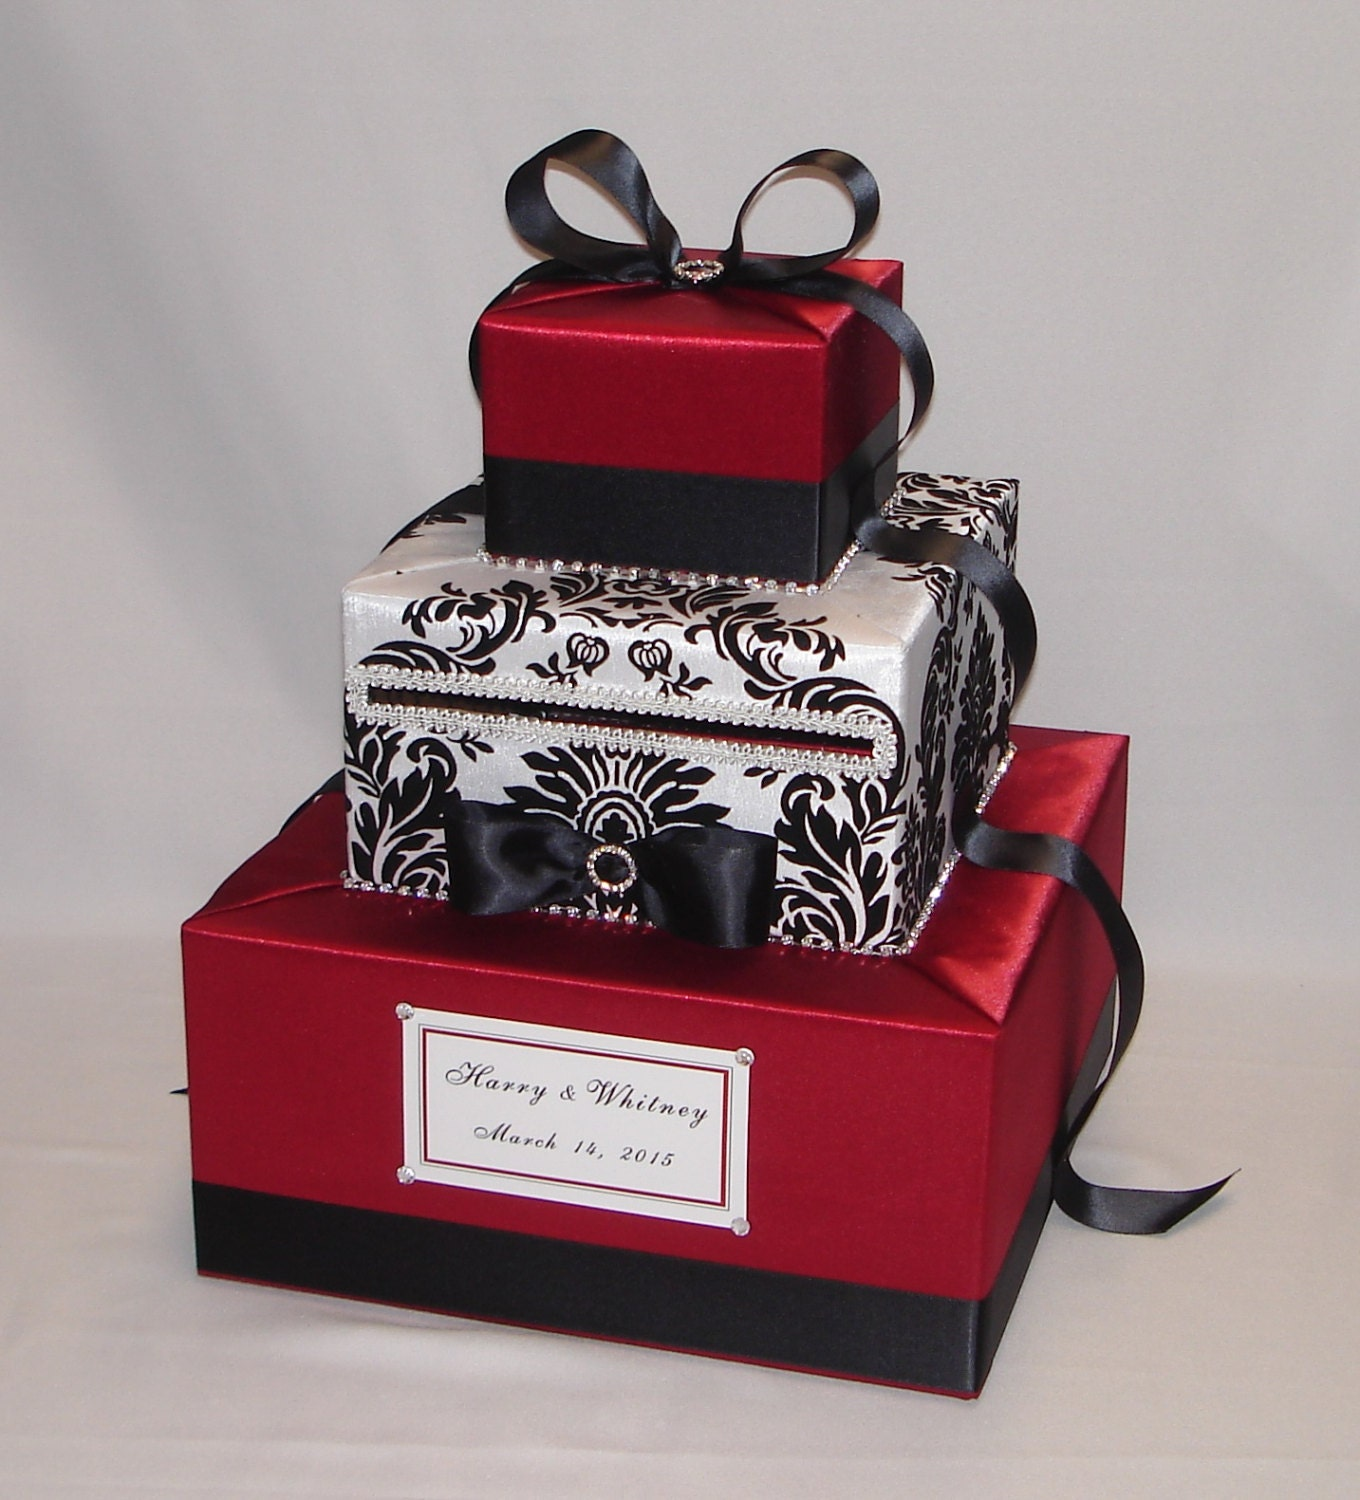 Red Black and White Damask Wedding Card Box any colors